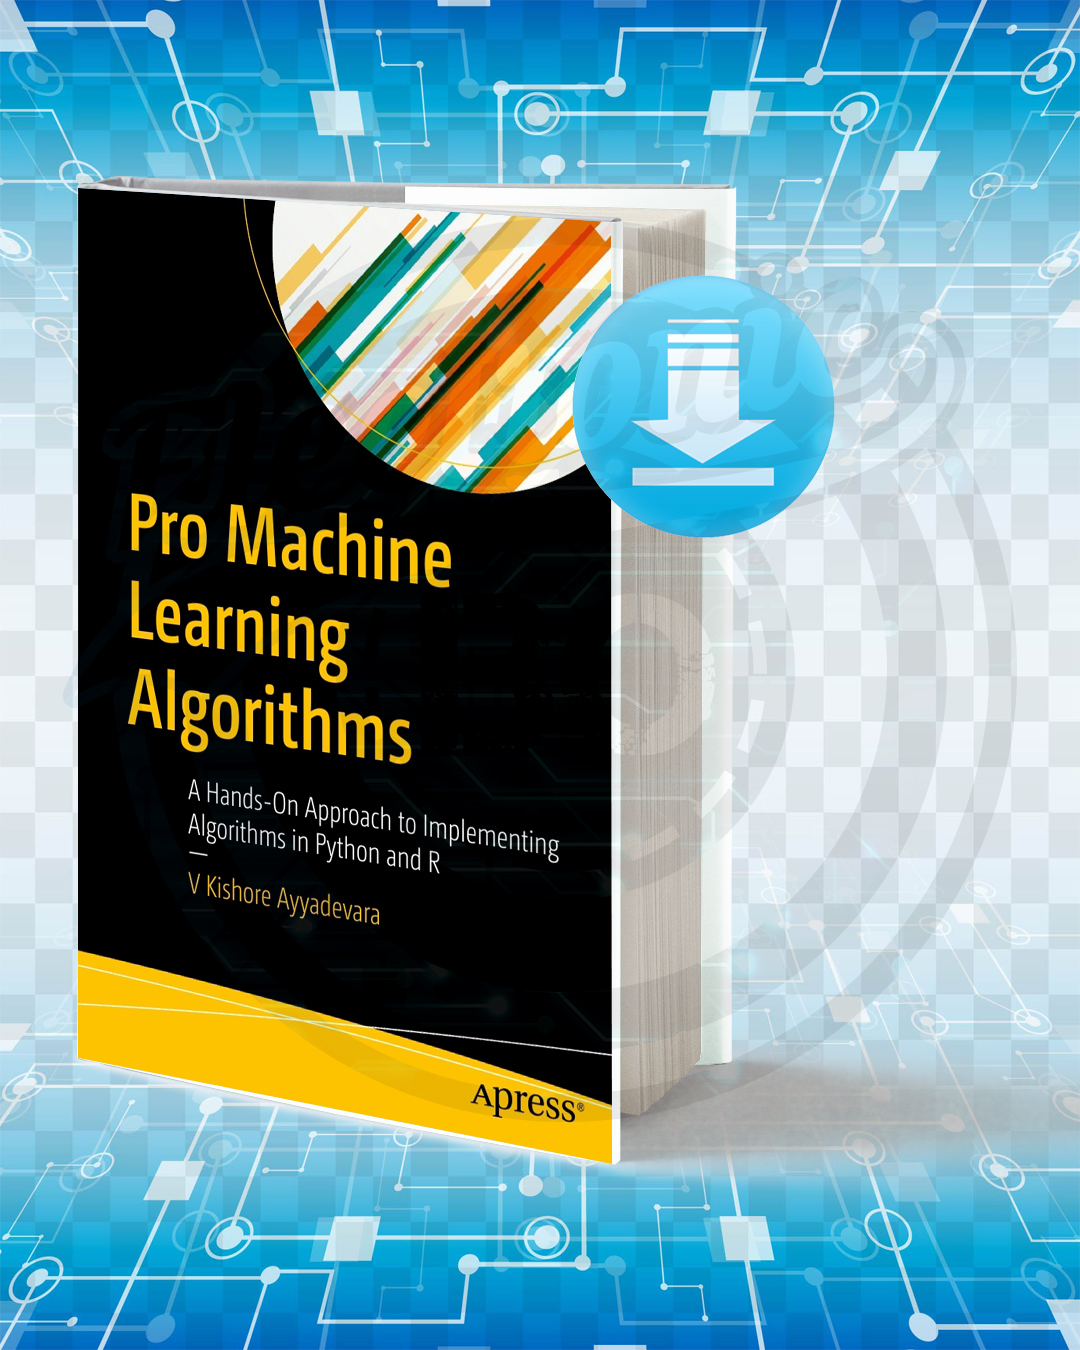 Free Book Pro Machine Learning Algorithms pdf.